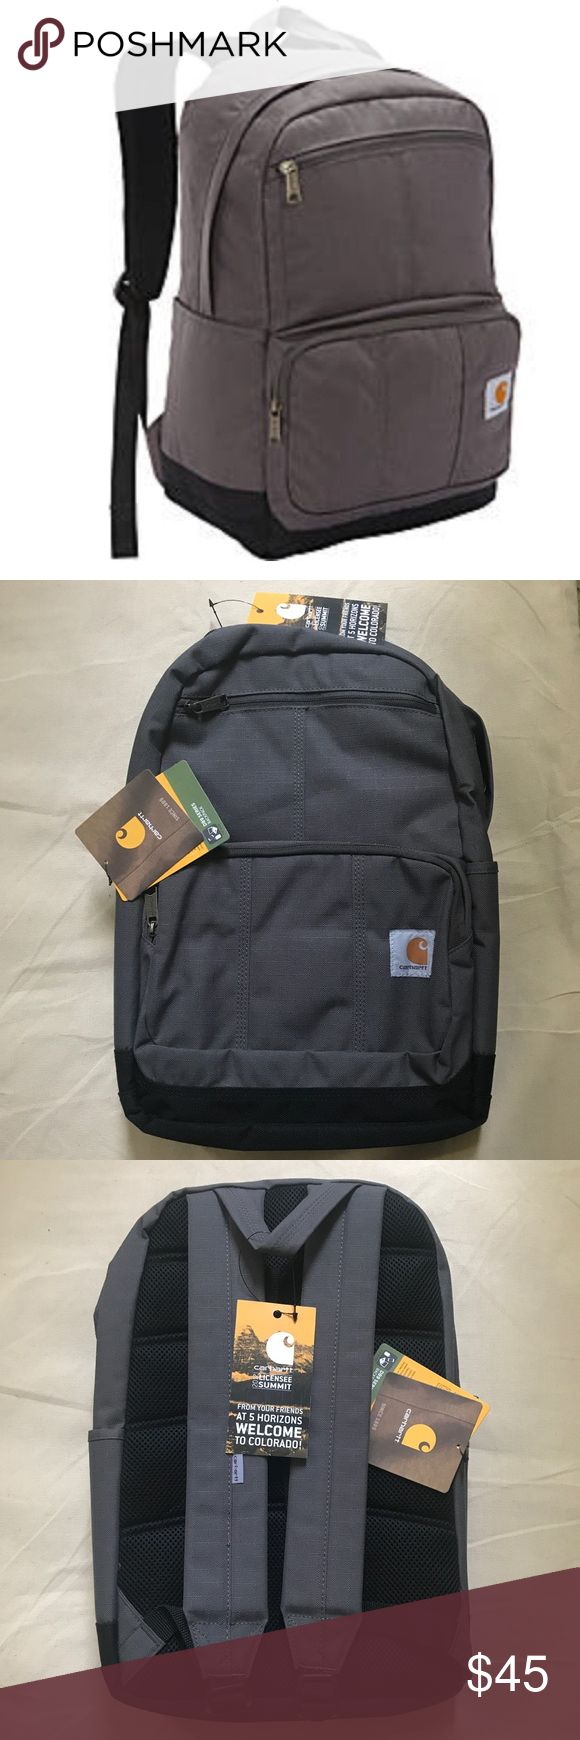 NWT Carhartt D89 series backpack Gravel gray NWT Carhartt D89 series backpack Gravel gray. 600D Ripstop exterior w/RainDefender durable water repellant. Excellent gift-giving condition or treat yourself! See pics for dimensions & features. NWT - unused condition. Smoke Free Home 🏡 Carhartt Bags Backpacks